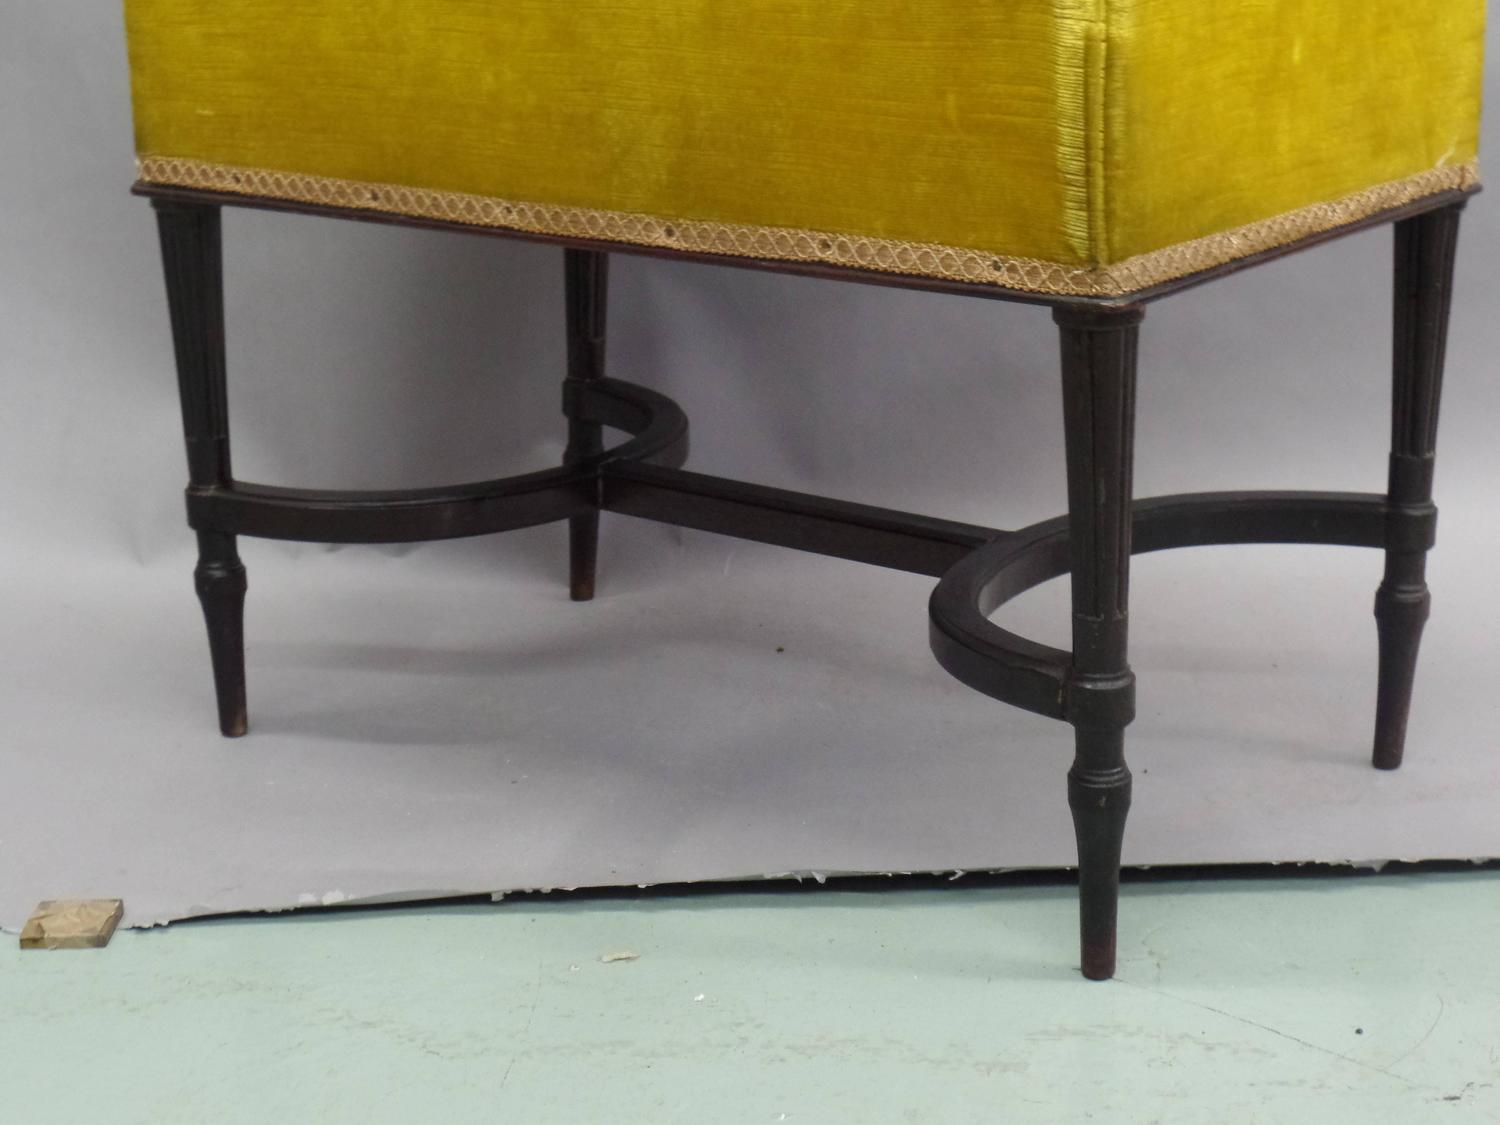 French 1940s Modern Neoclassical Piano Bench For Sale At 1stdibs